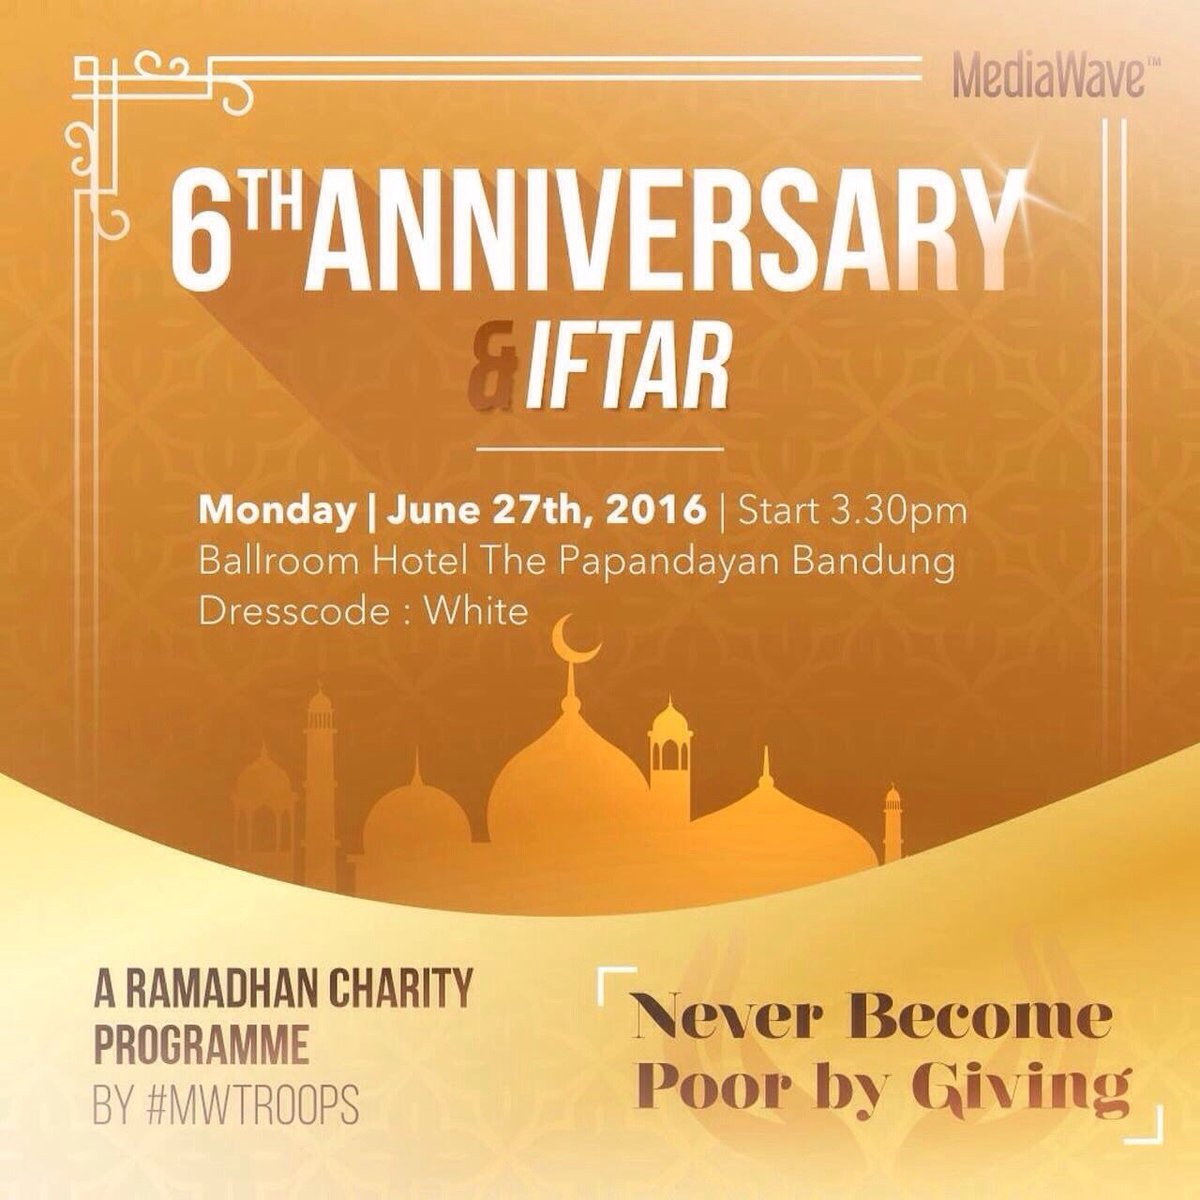 It's Today! Mediawave internal charity event and Iftar Dinner with the whole #MWtroops. #MweraihBerkah #Mediawave6th https://t.co/7fO1ivg6yG